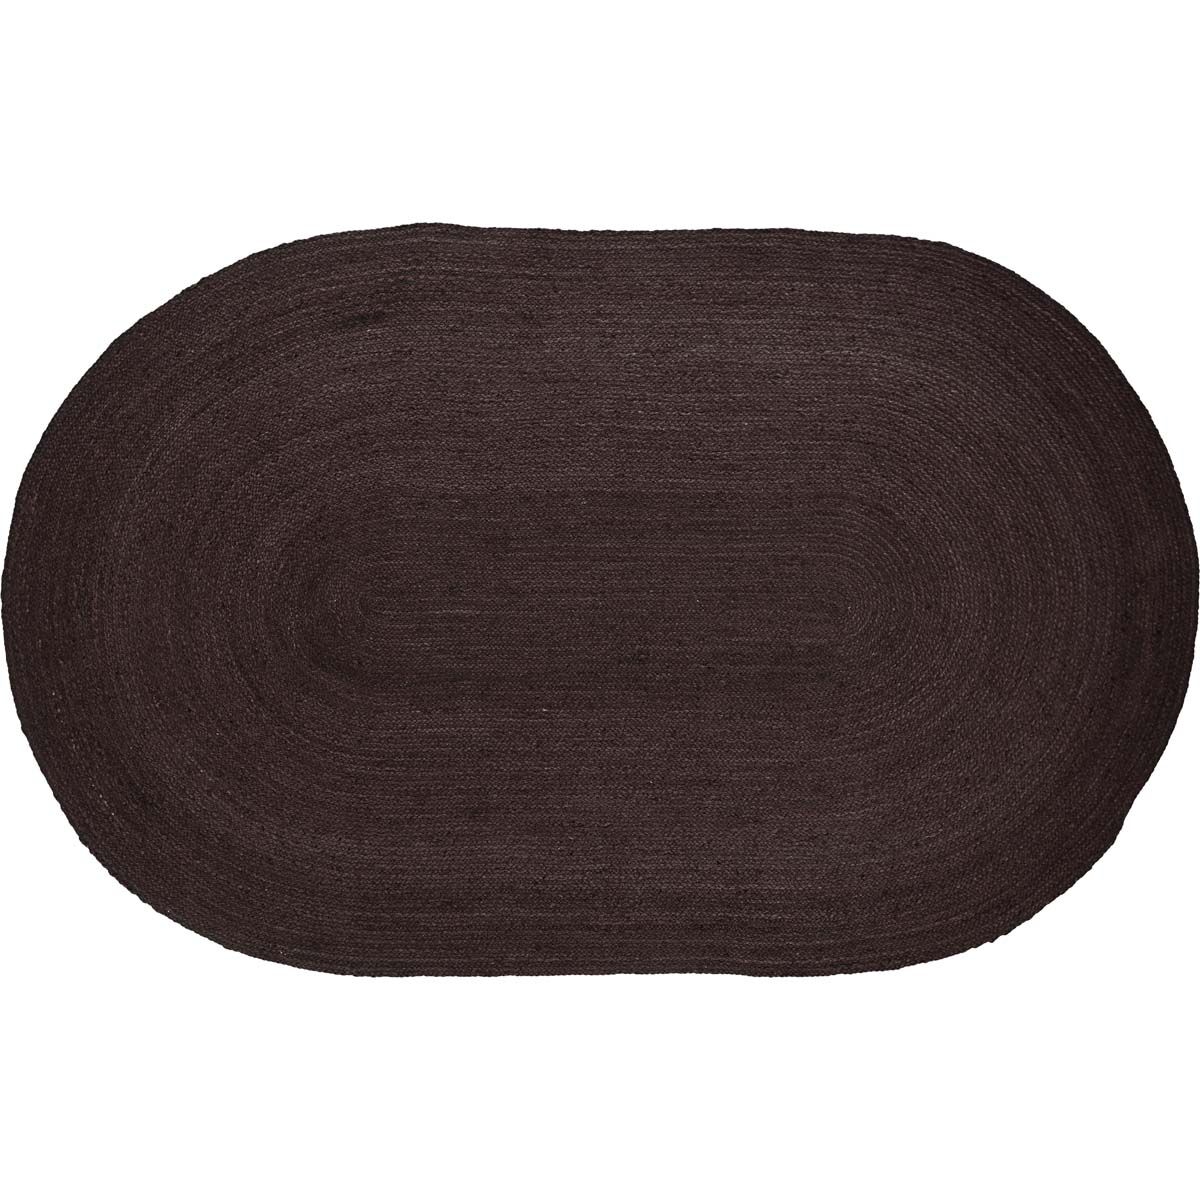 Rudd Thanksgiving Flooring Burgundy Red Area Rug Rug Size: Oval 5' x 8'